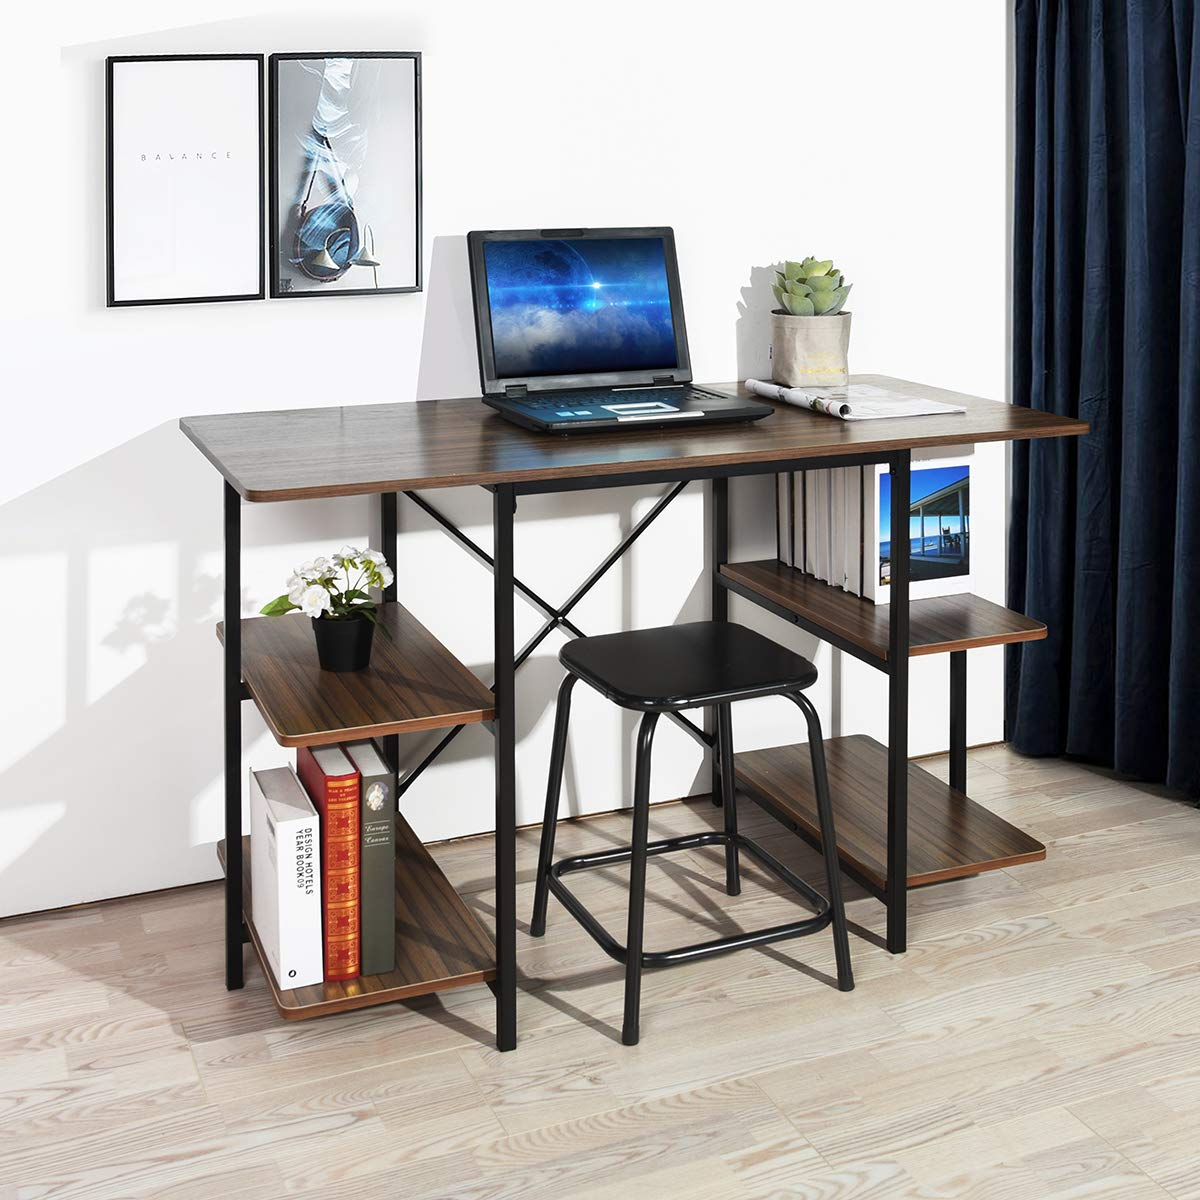 Computer Desks,Modern PC Laptop Study Home Writing Desk with Extra Shelves -Brown